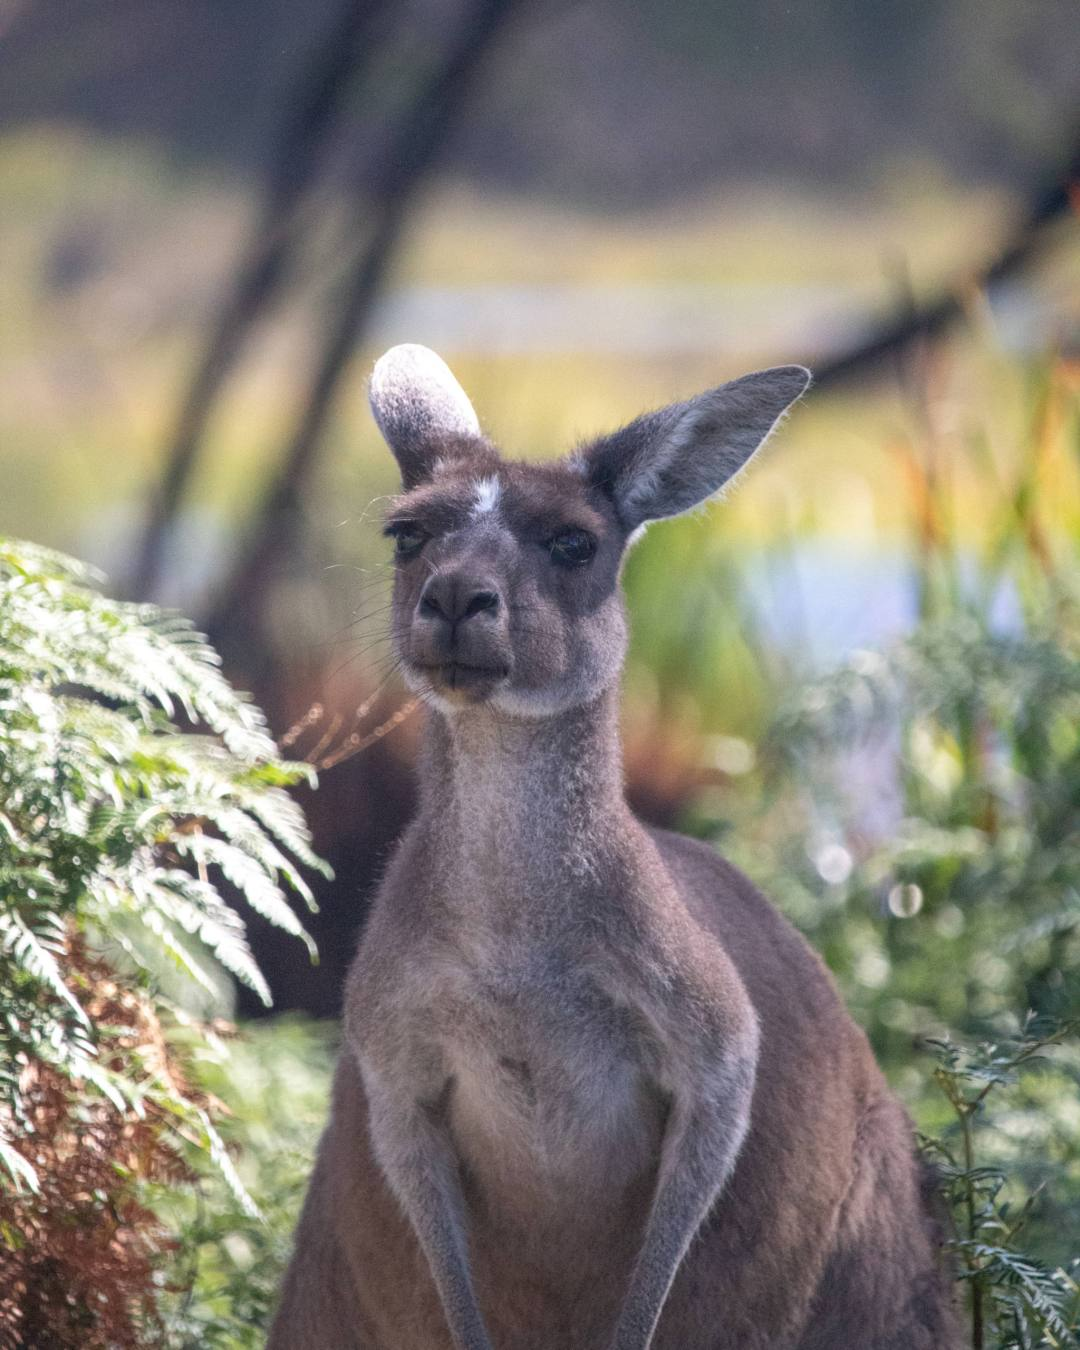 kangaroo looks at camera